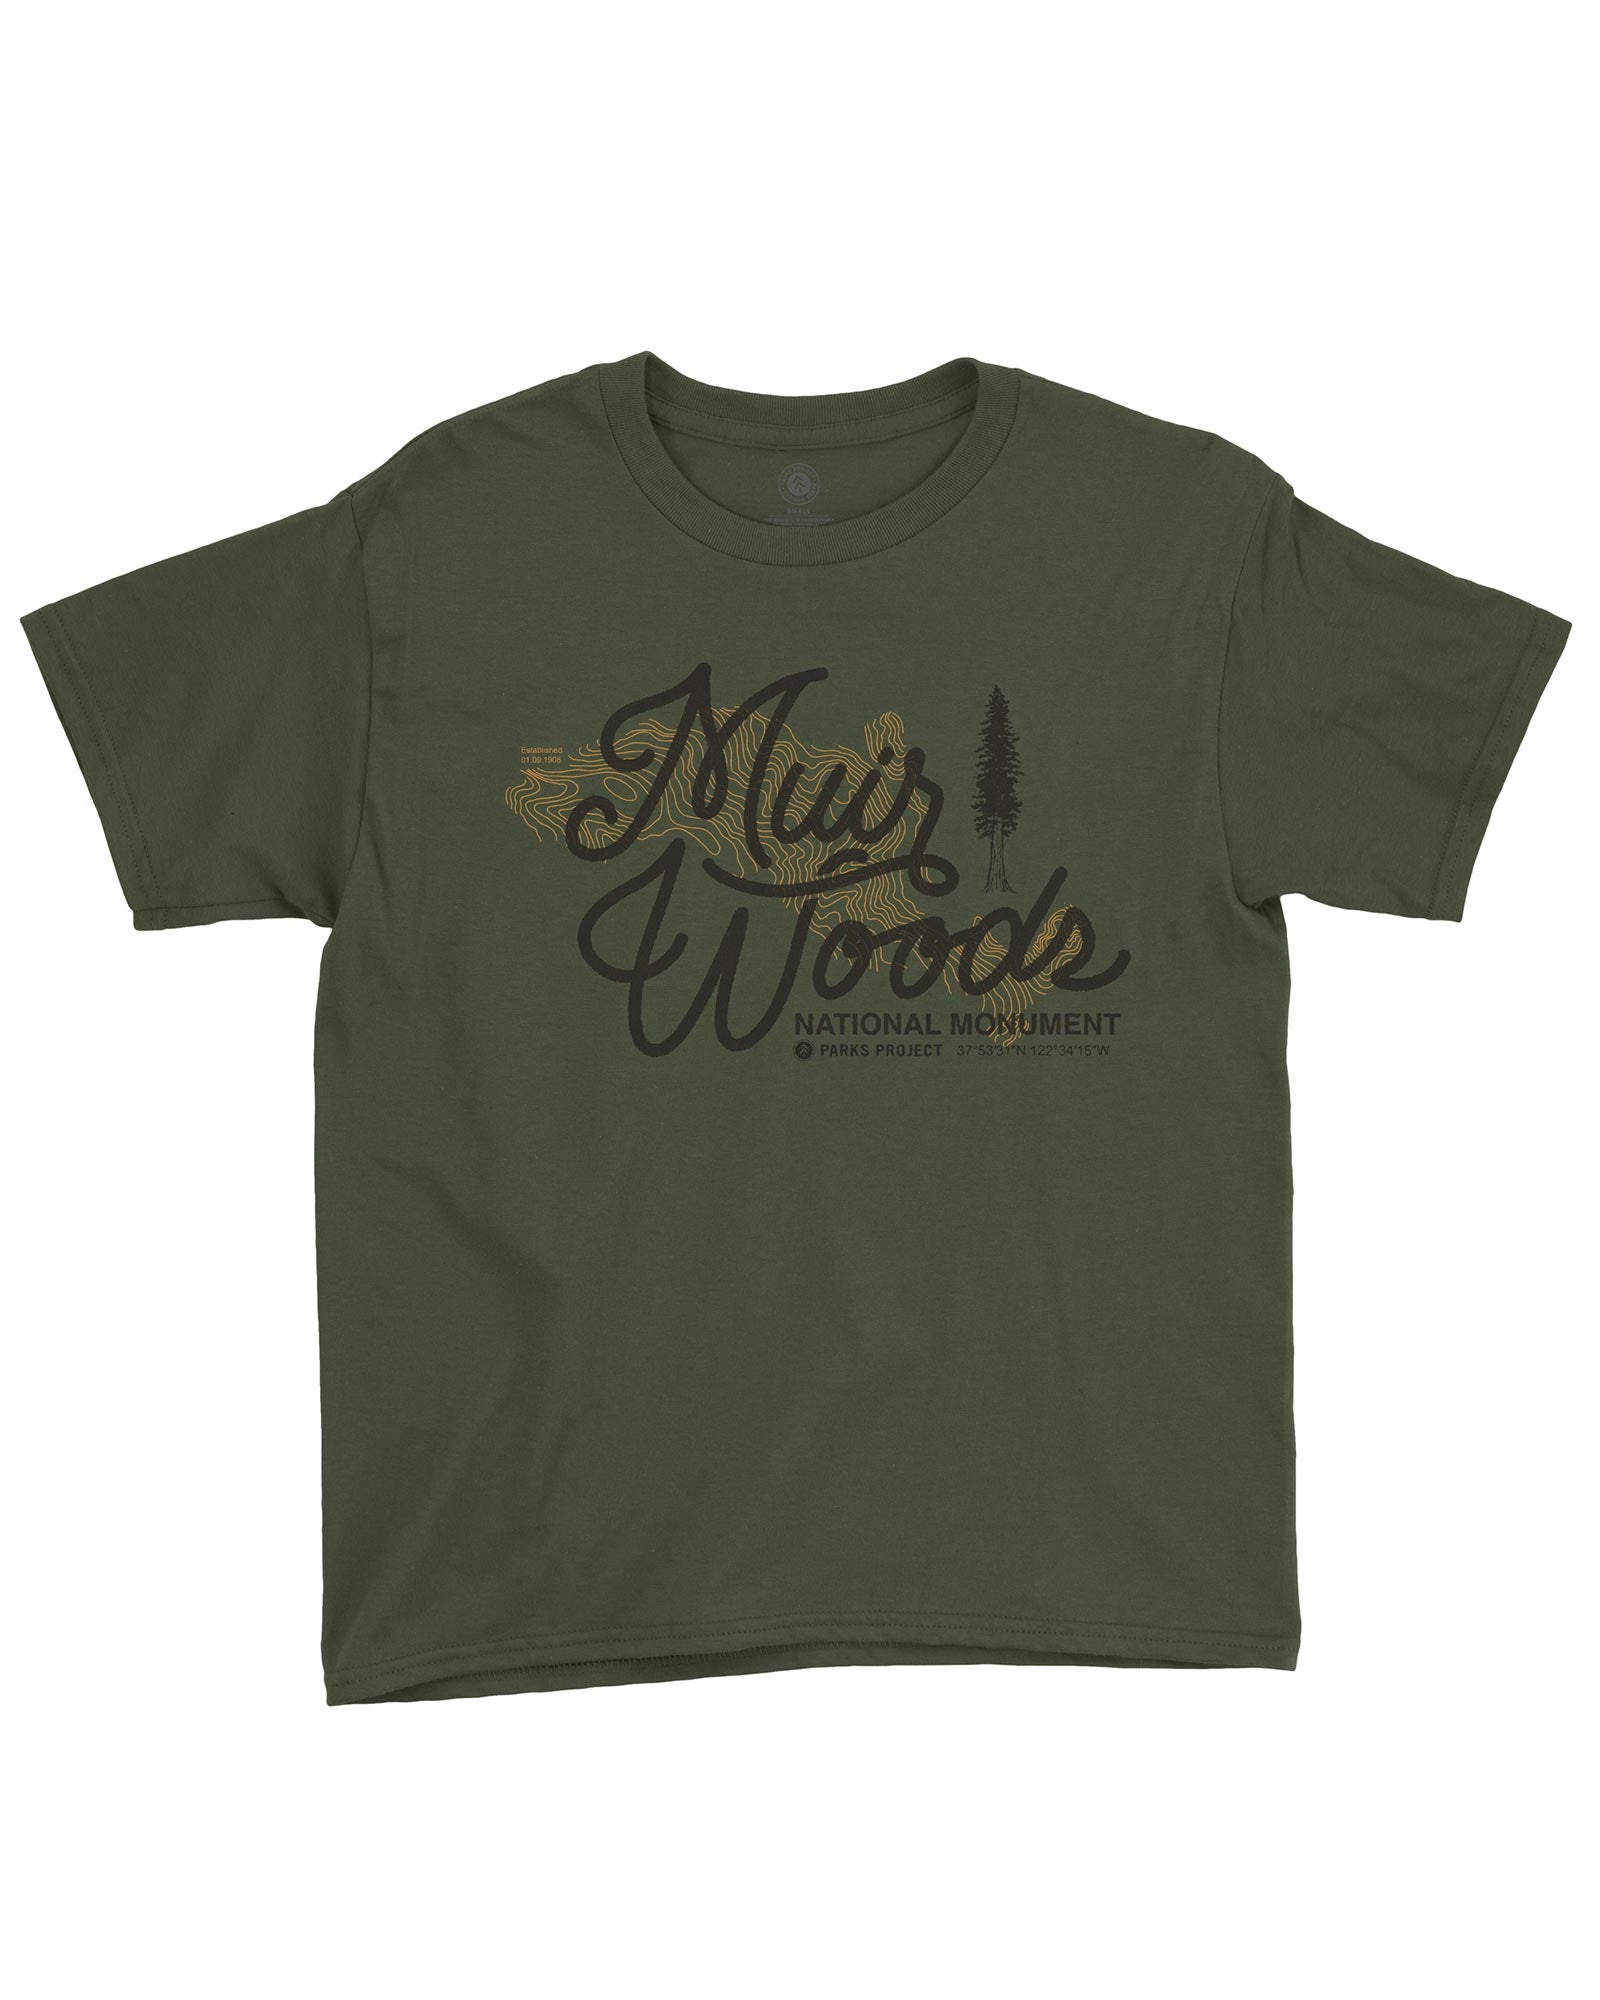 Muir Woods Find Your Trail Youth Tee | Parks Project | National Park Tee